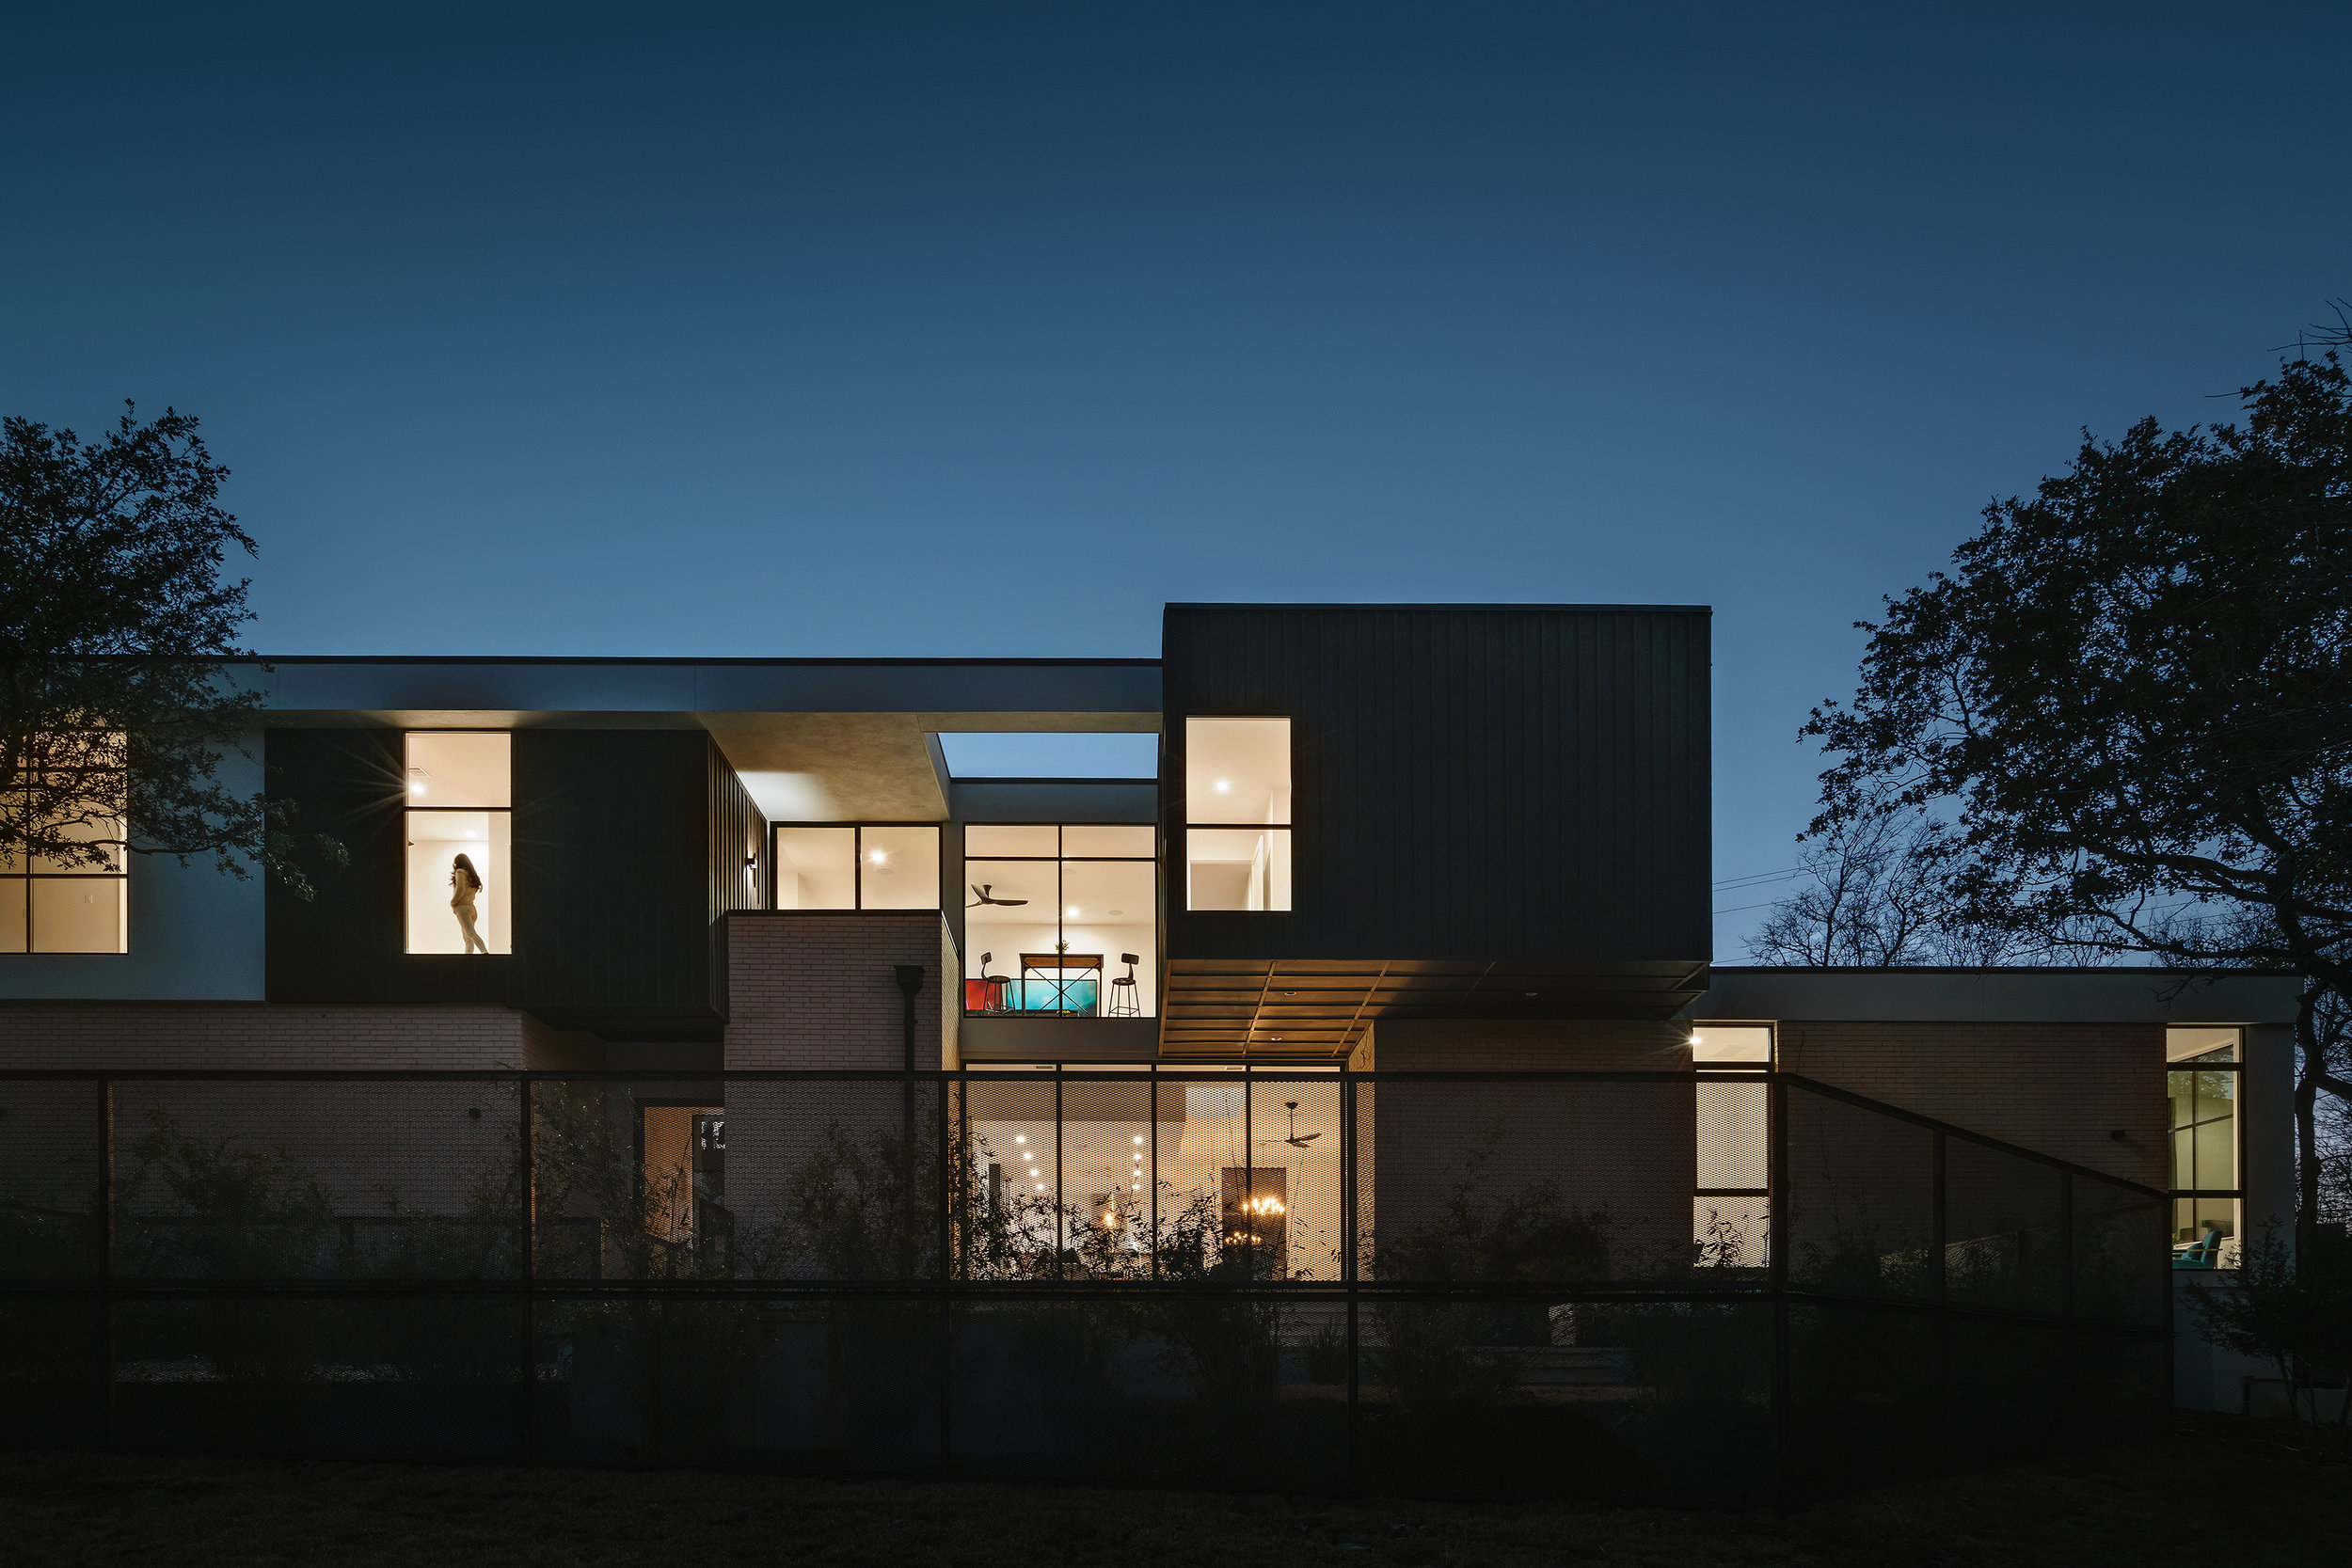 23 Allotted Space House by Matt Fajkus Architecture. Photo by Chase Daniel.jpg